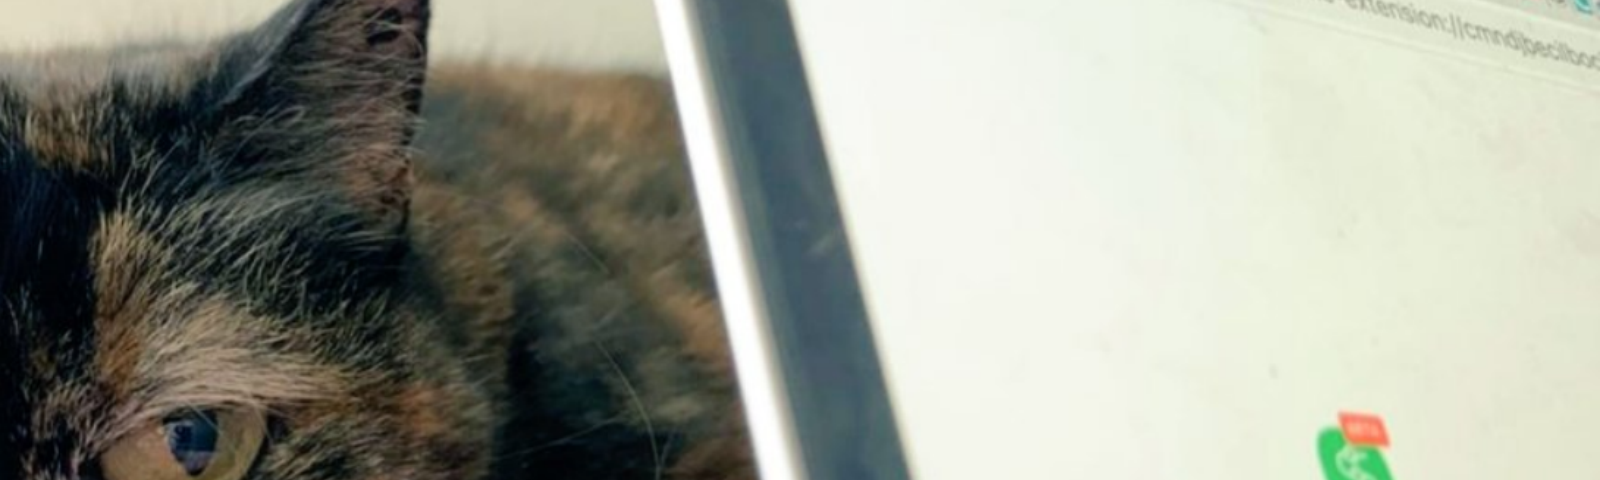 A cat behind a computer screen with the Swash browser extension page open